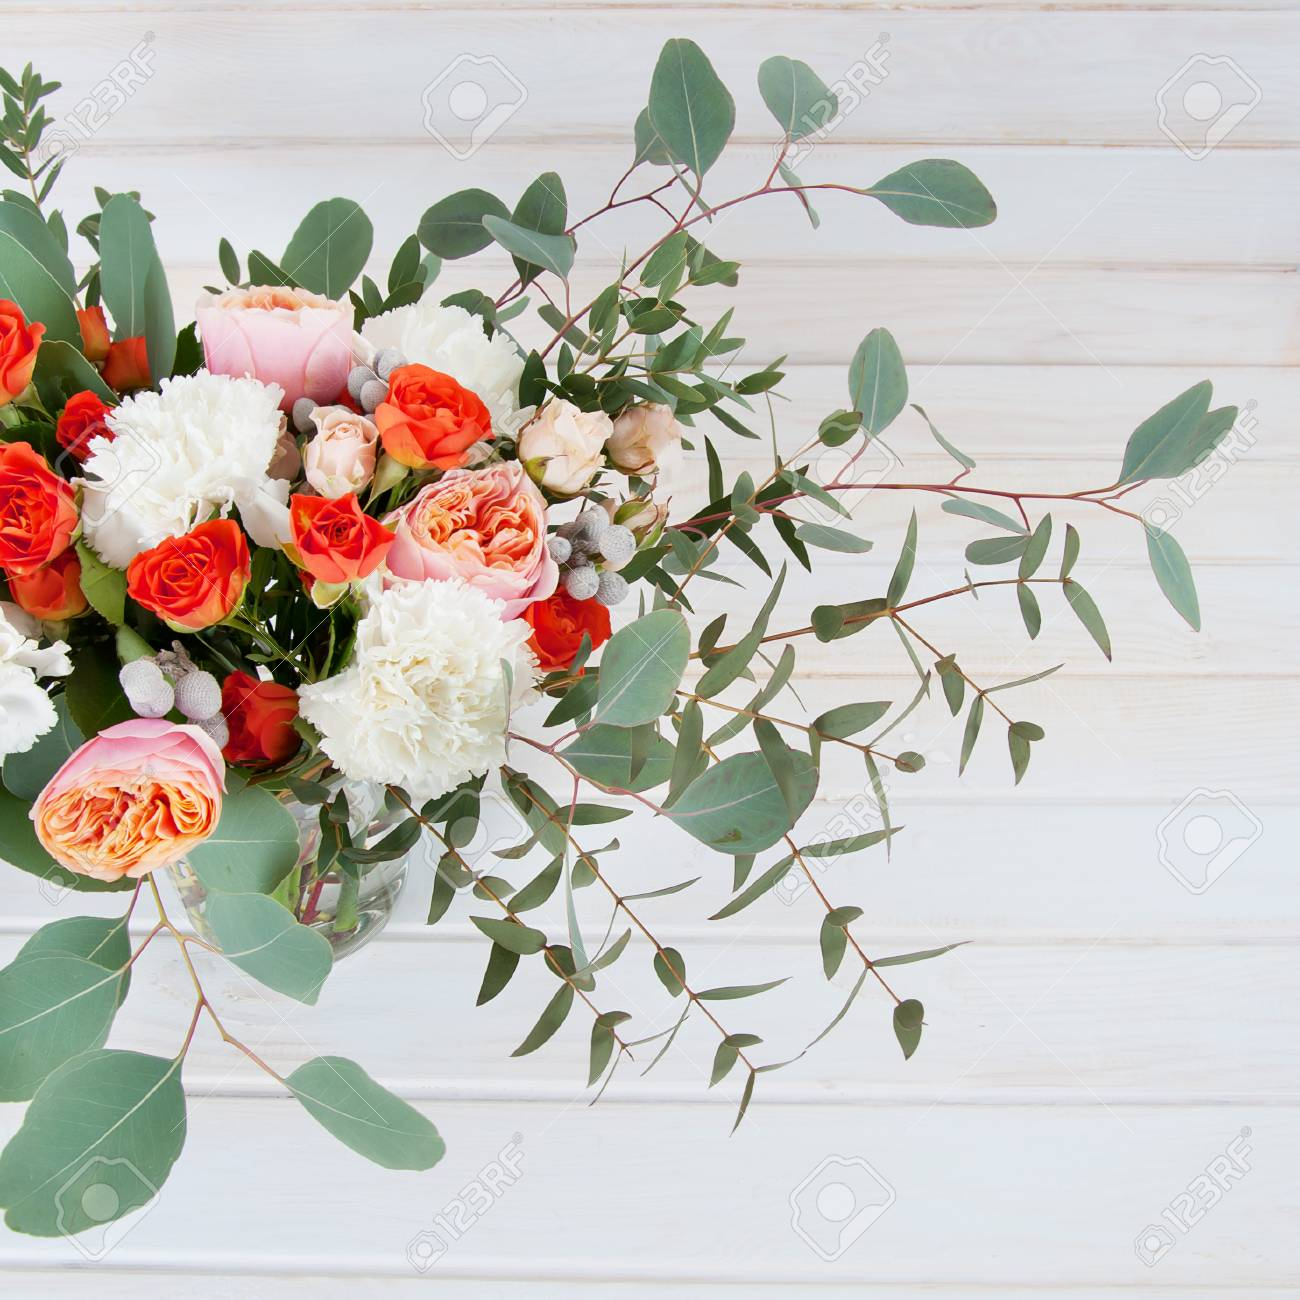 Beautiful Bridal Bouquet Made Of White And Orange Flowers Ribbon